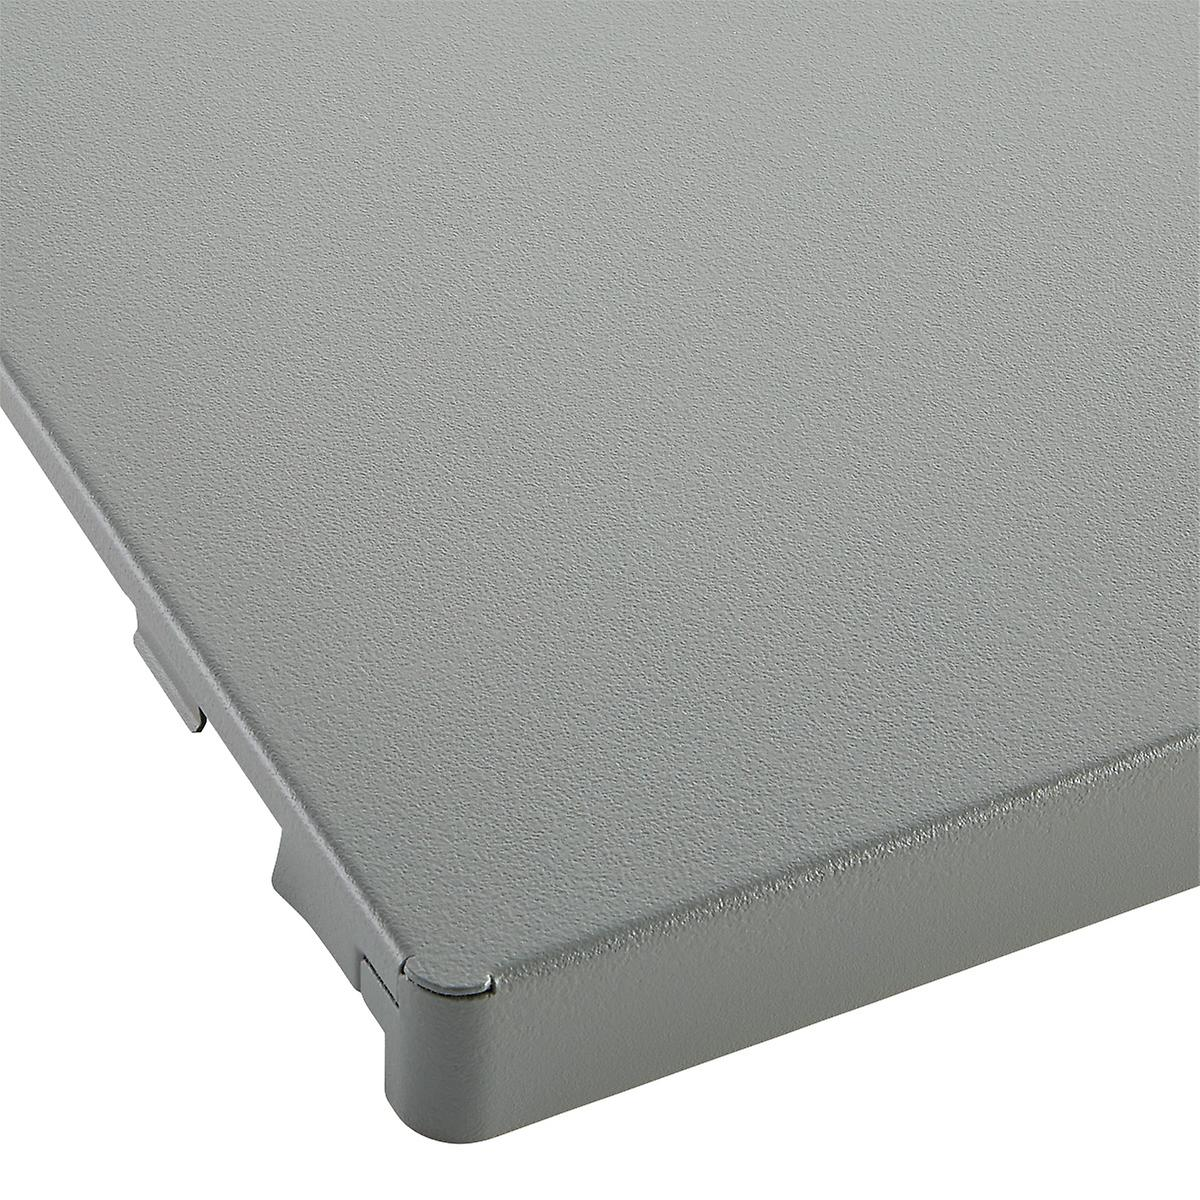 Grey Elfa Utility Work Surface The Container Store